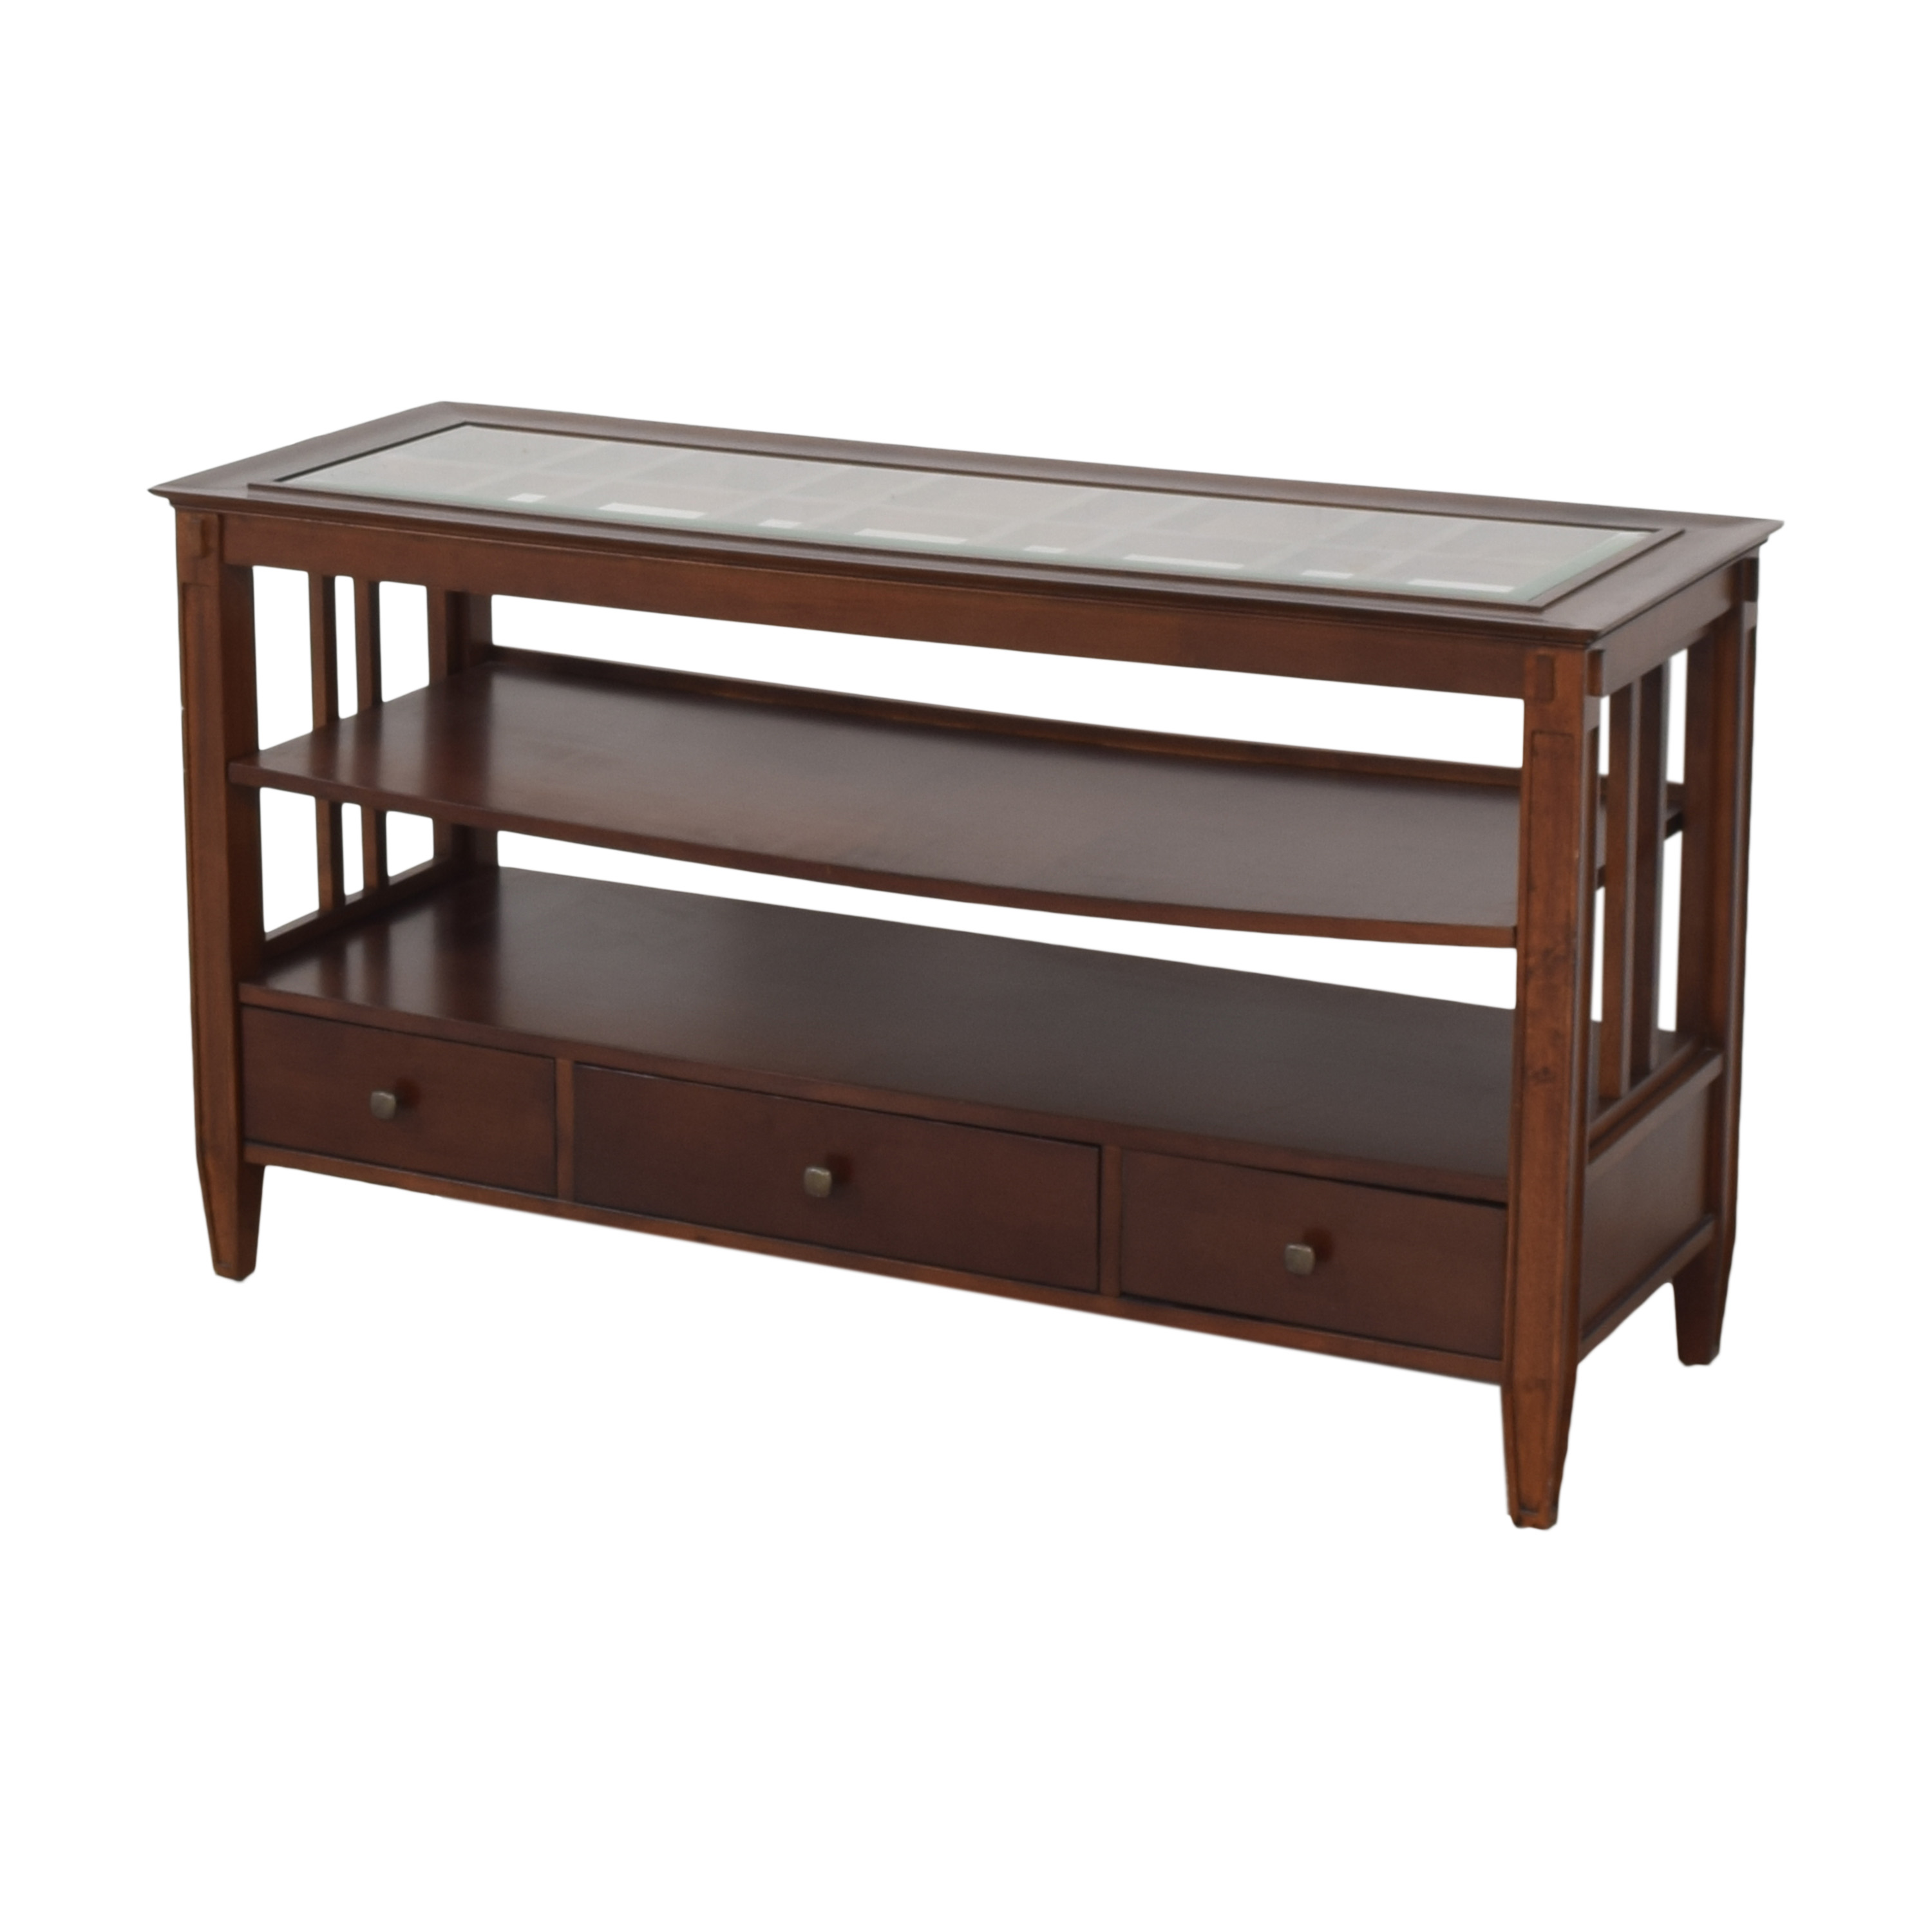 Macy's Macy's Three Drawer Console Table